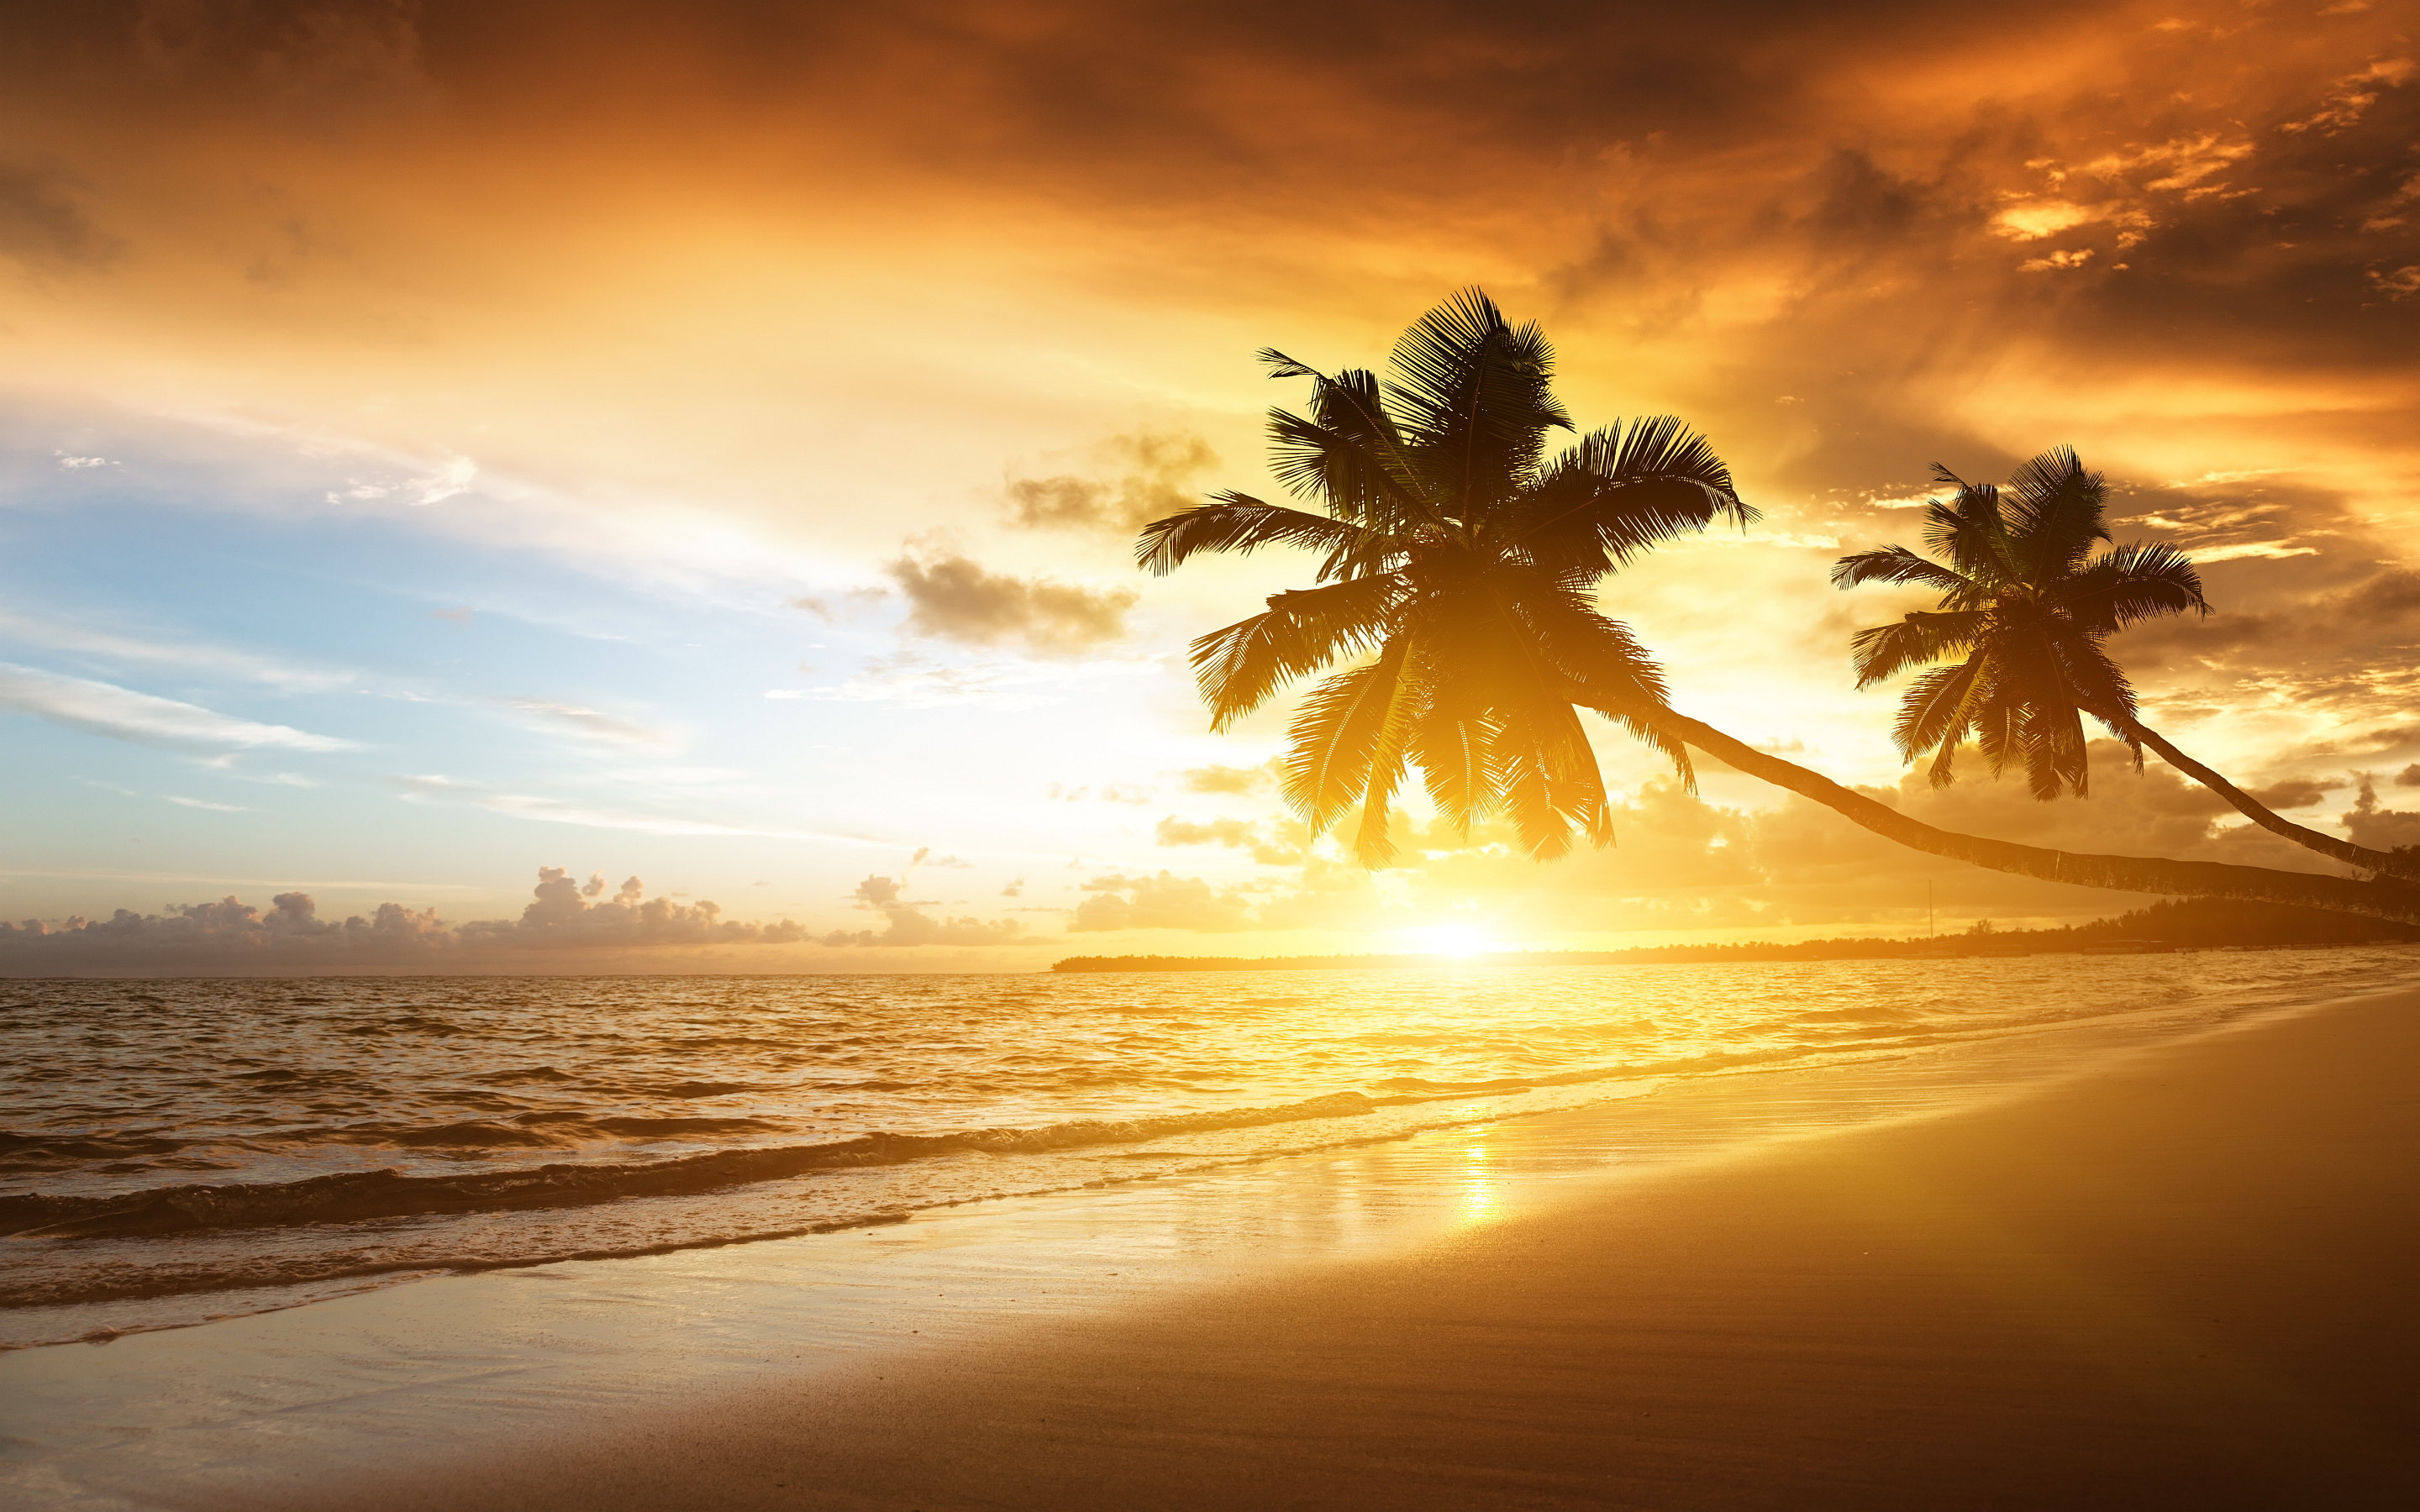 Download 42 High Res Caribbean Wallpaper Backgrounds Free 5 Beach